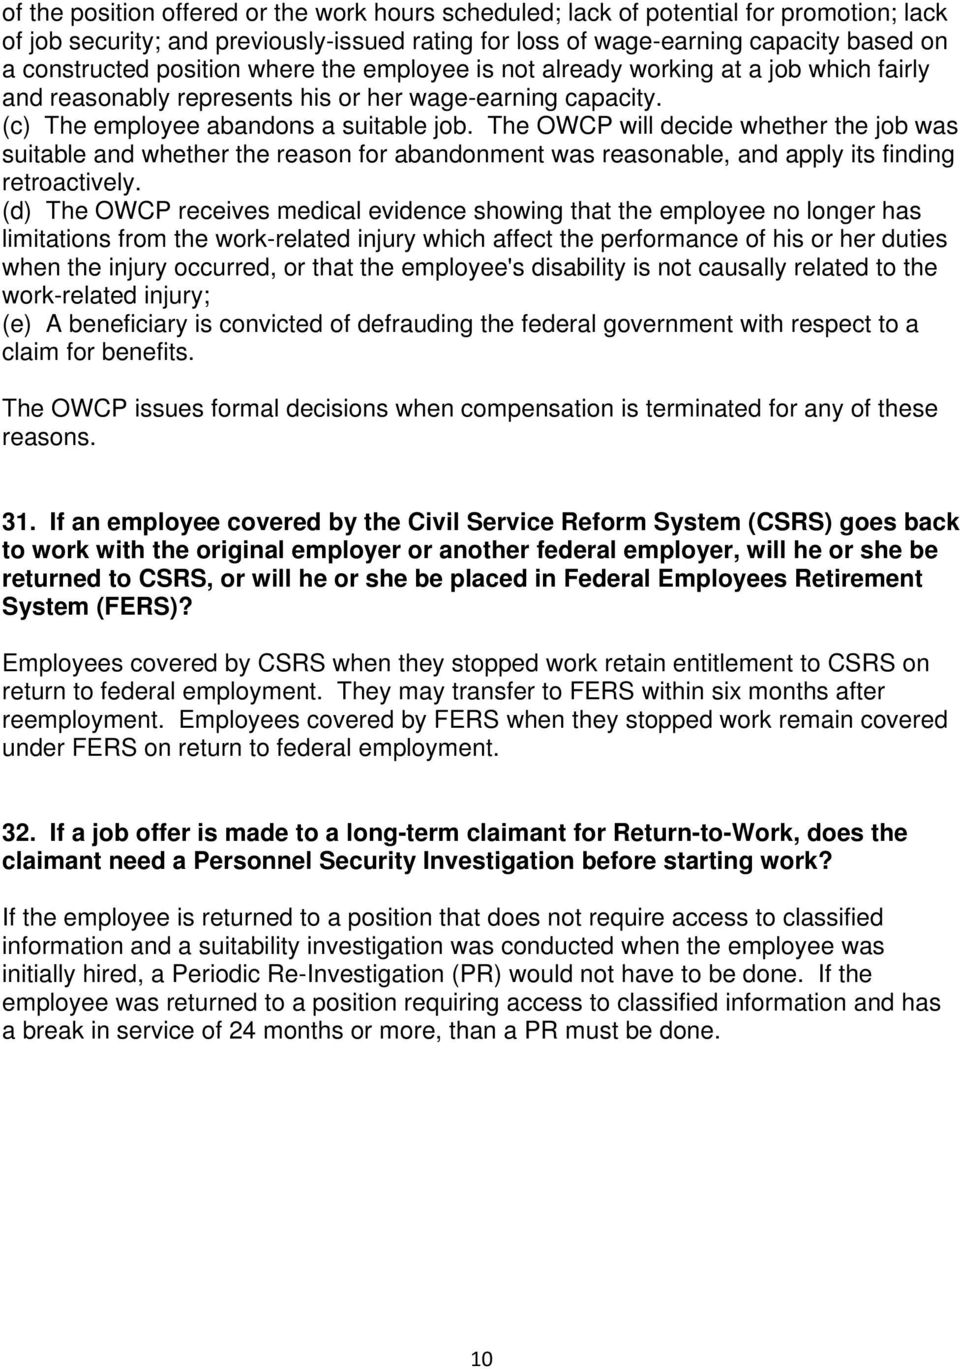 The OWCP will decide whether the job was suitable and whether the reason for abandonment was reasonable, and apply its finding retroactively.